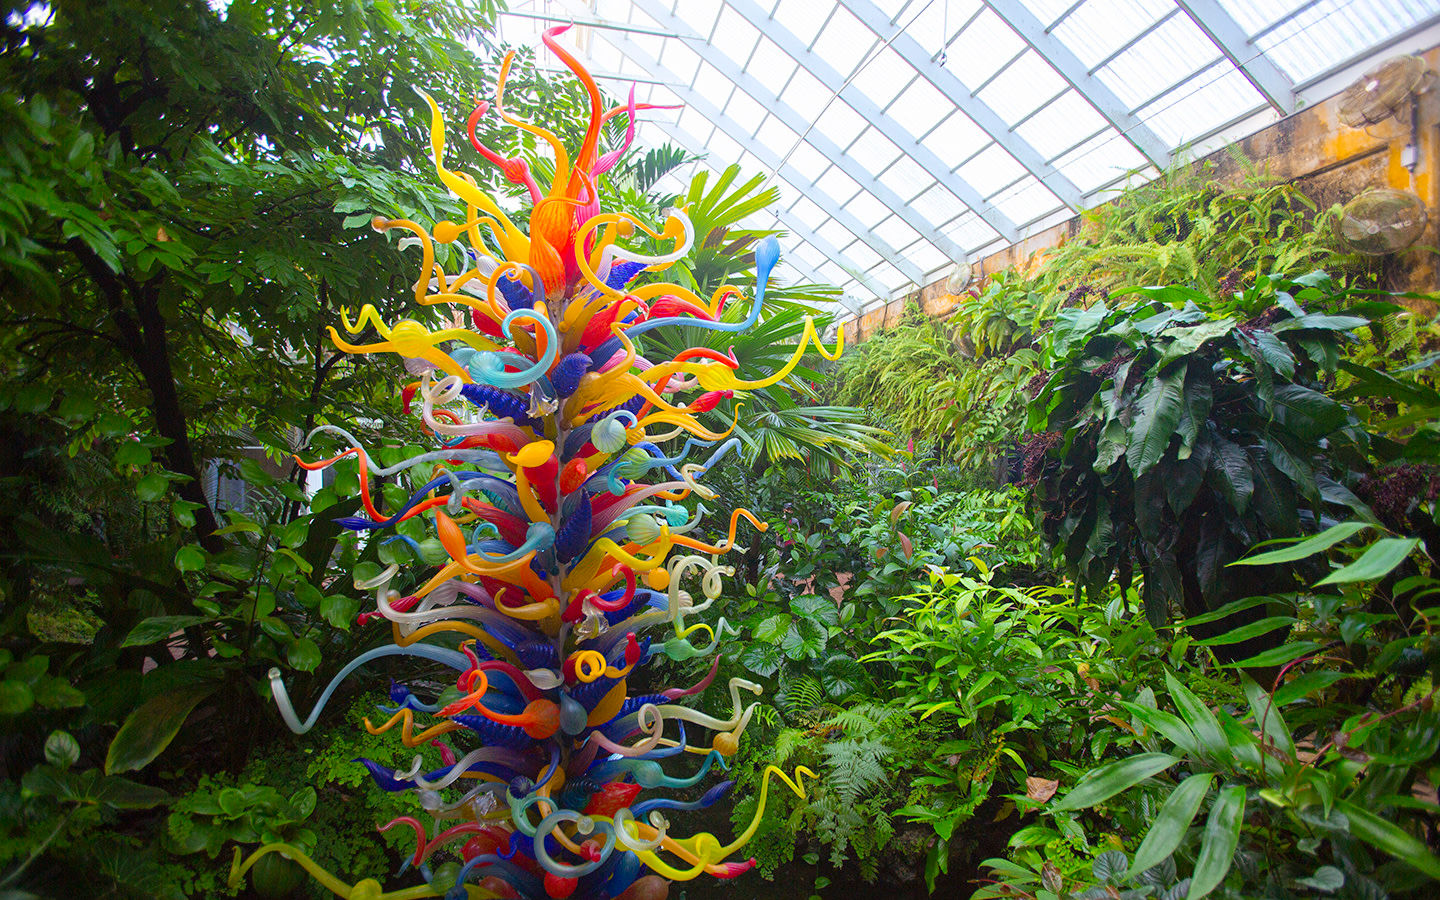 Chihuly-style glass sculpture